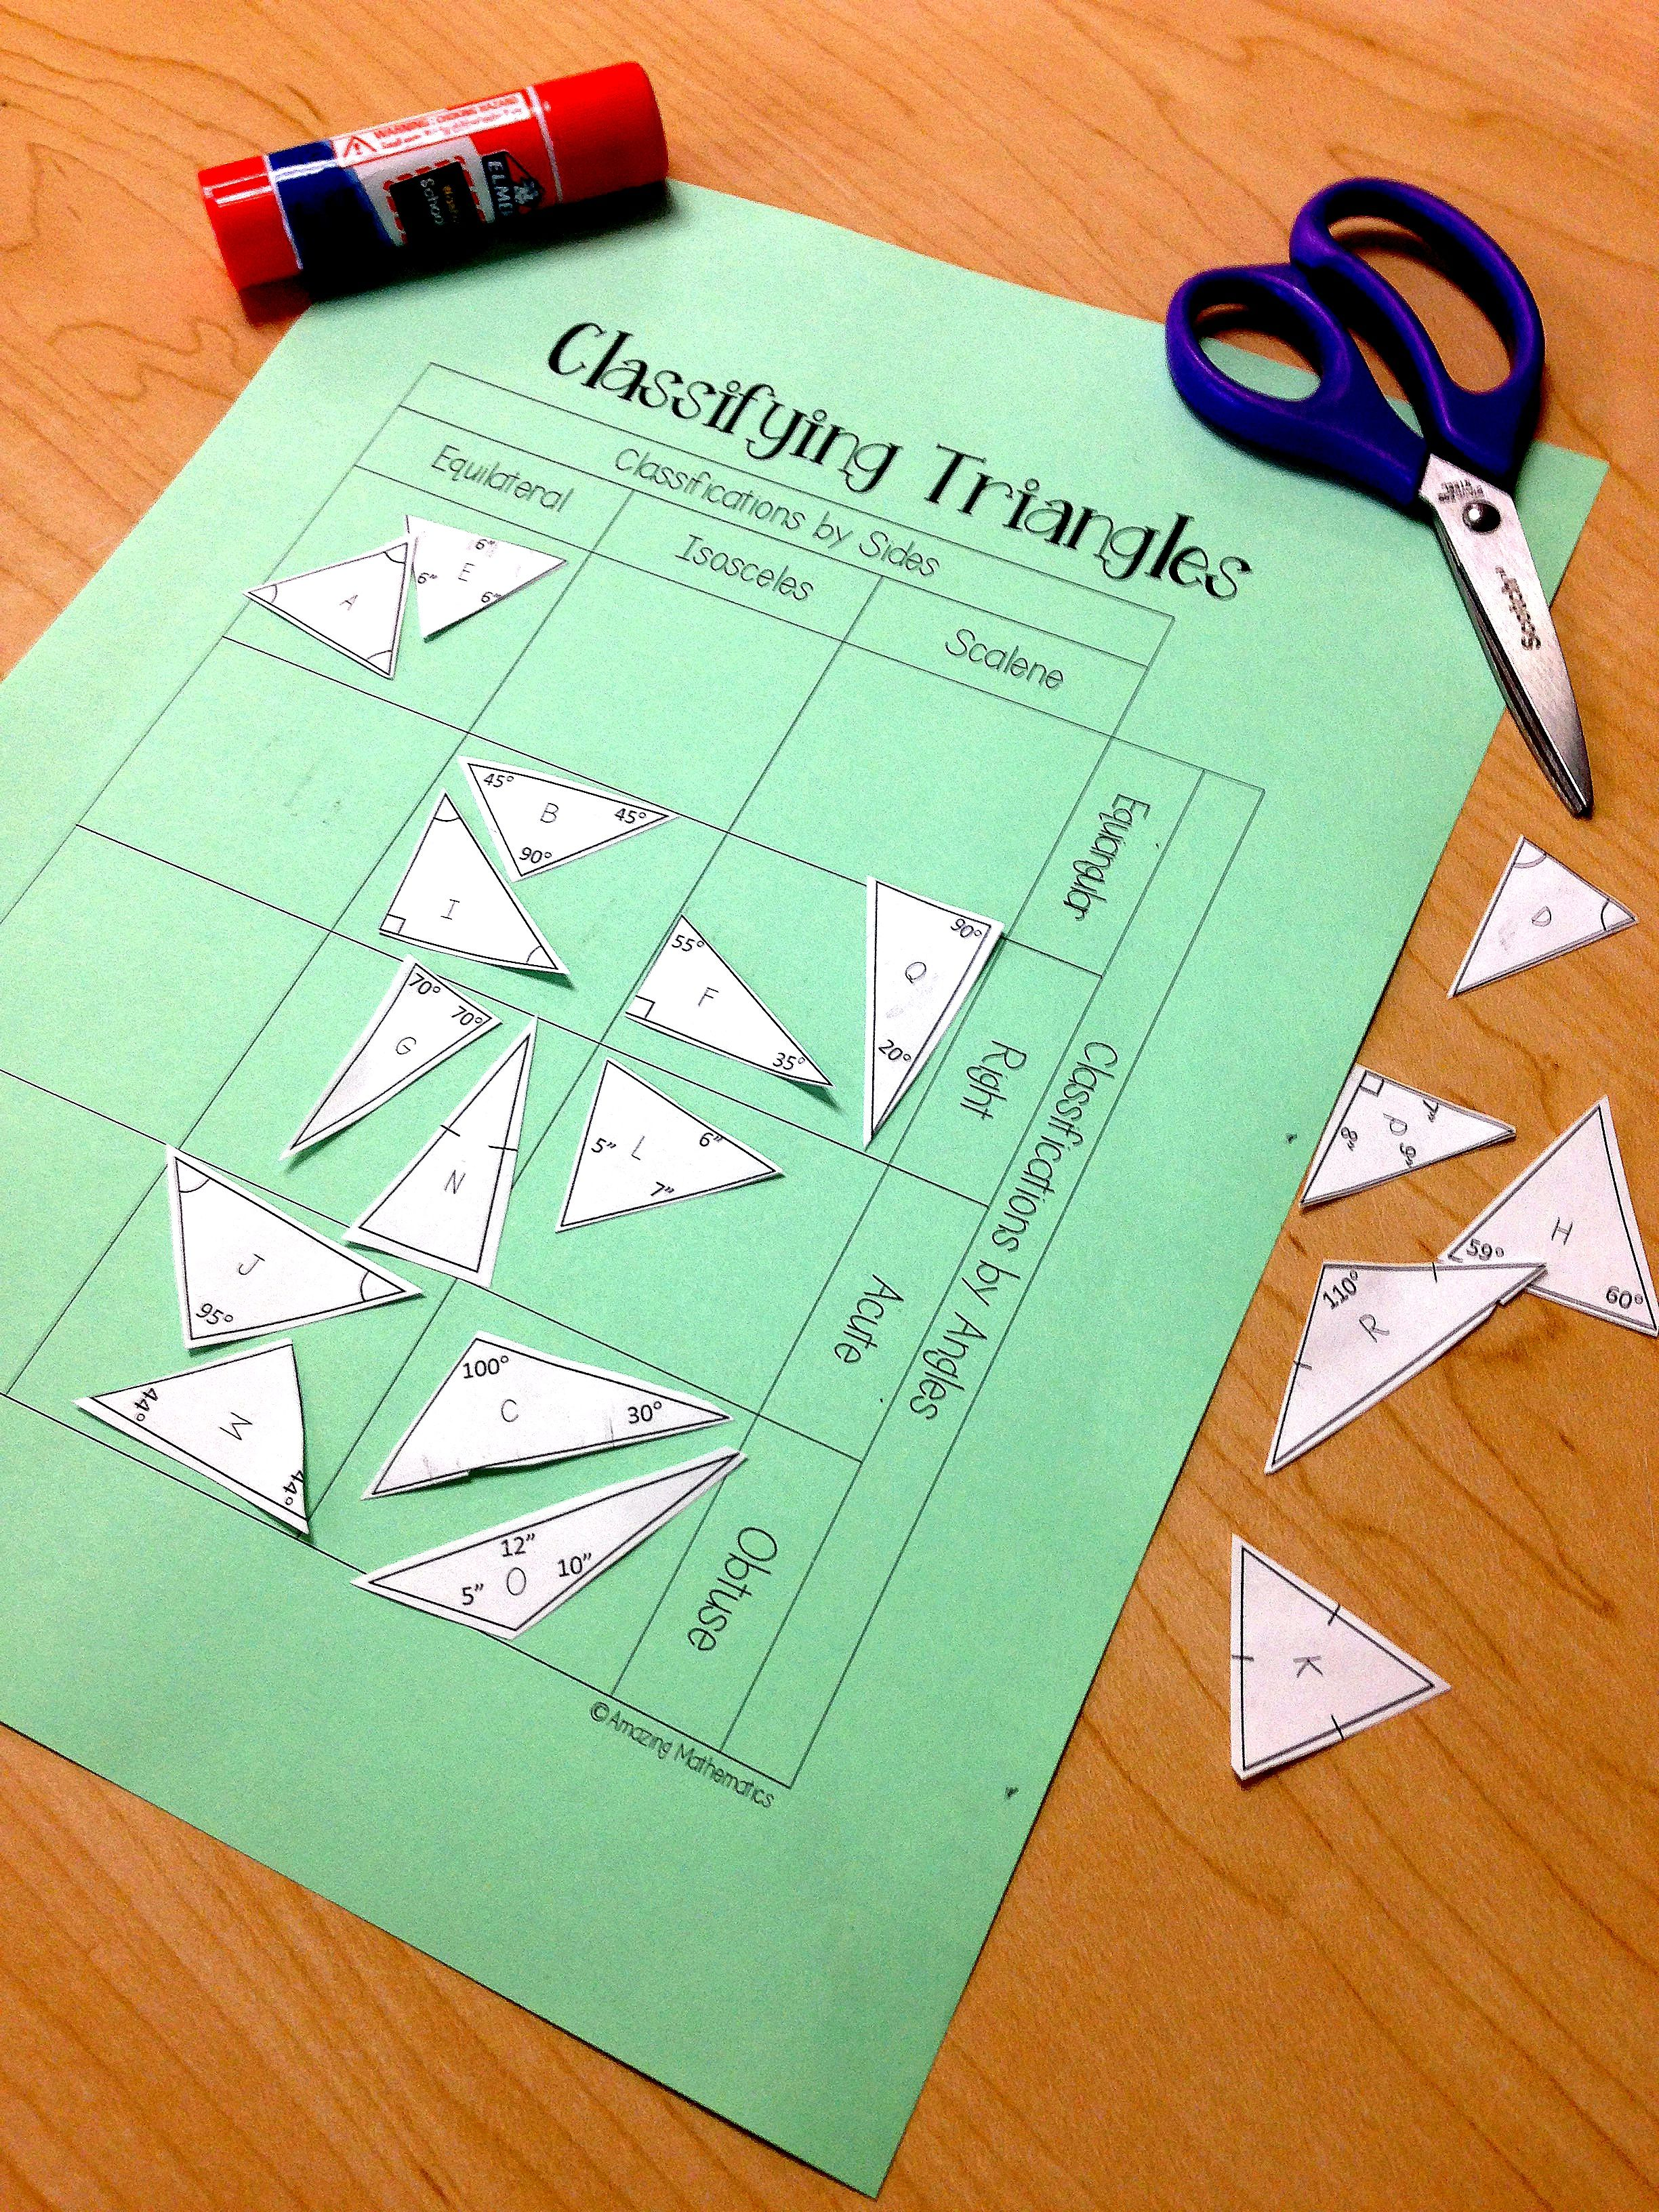 Classifying triangles worksheet high school